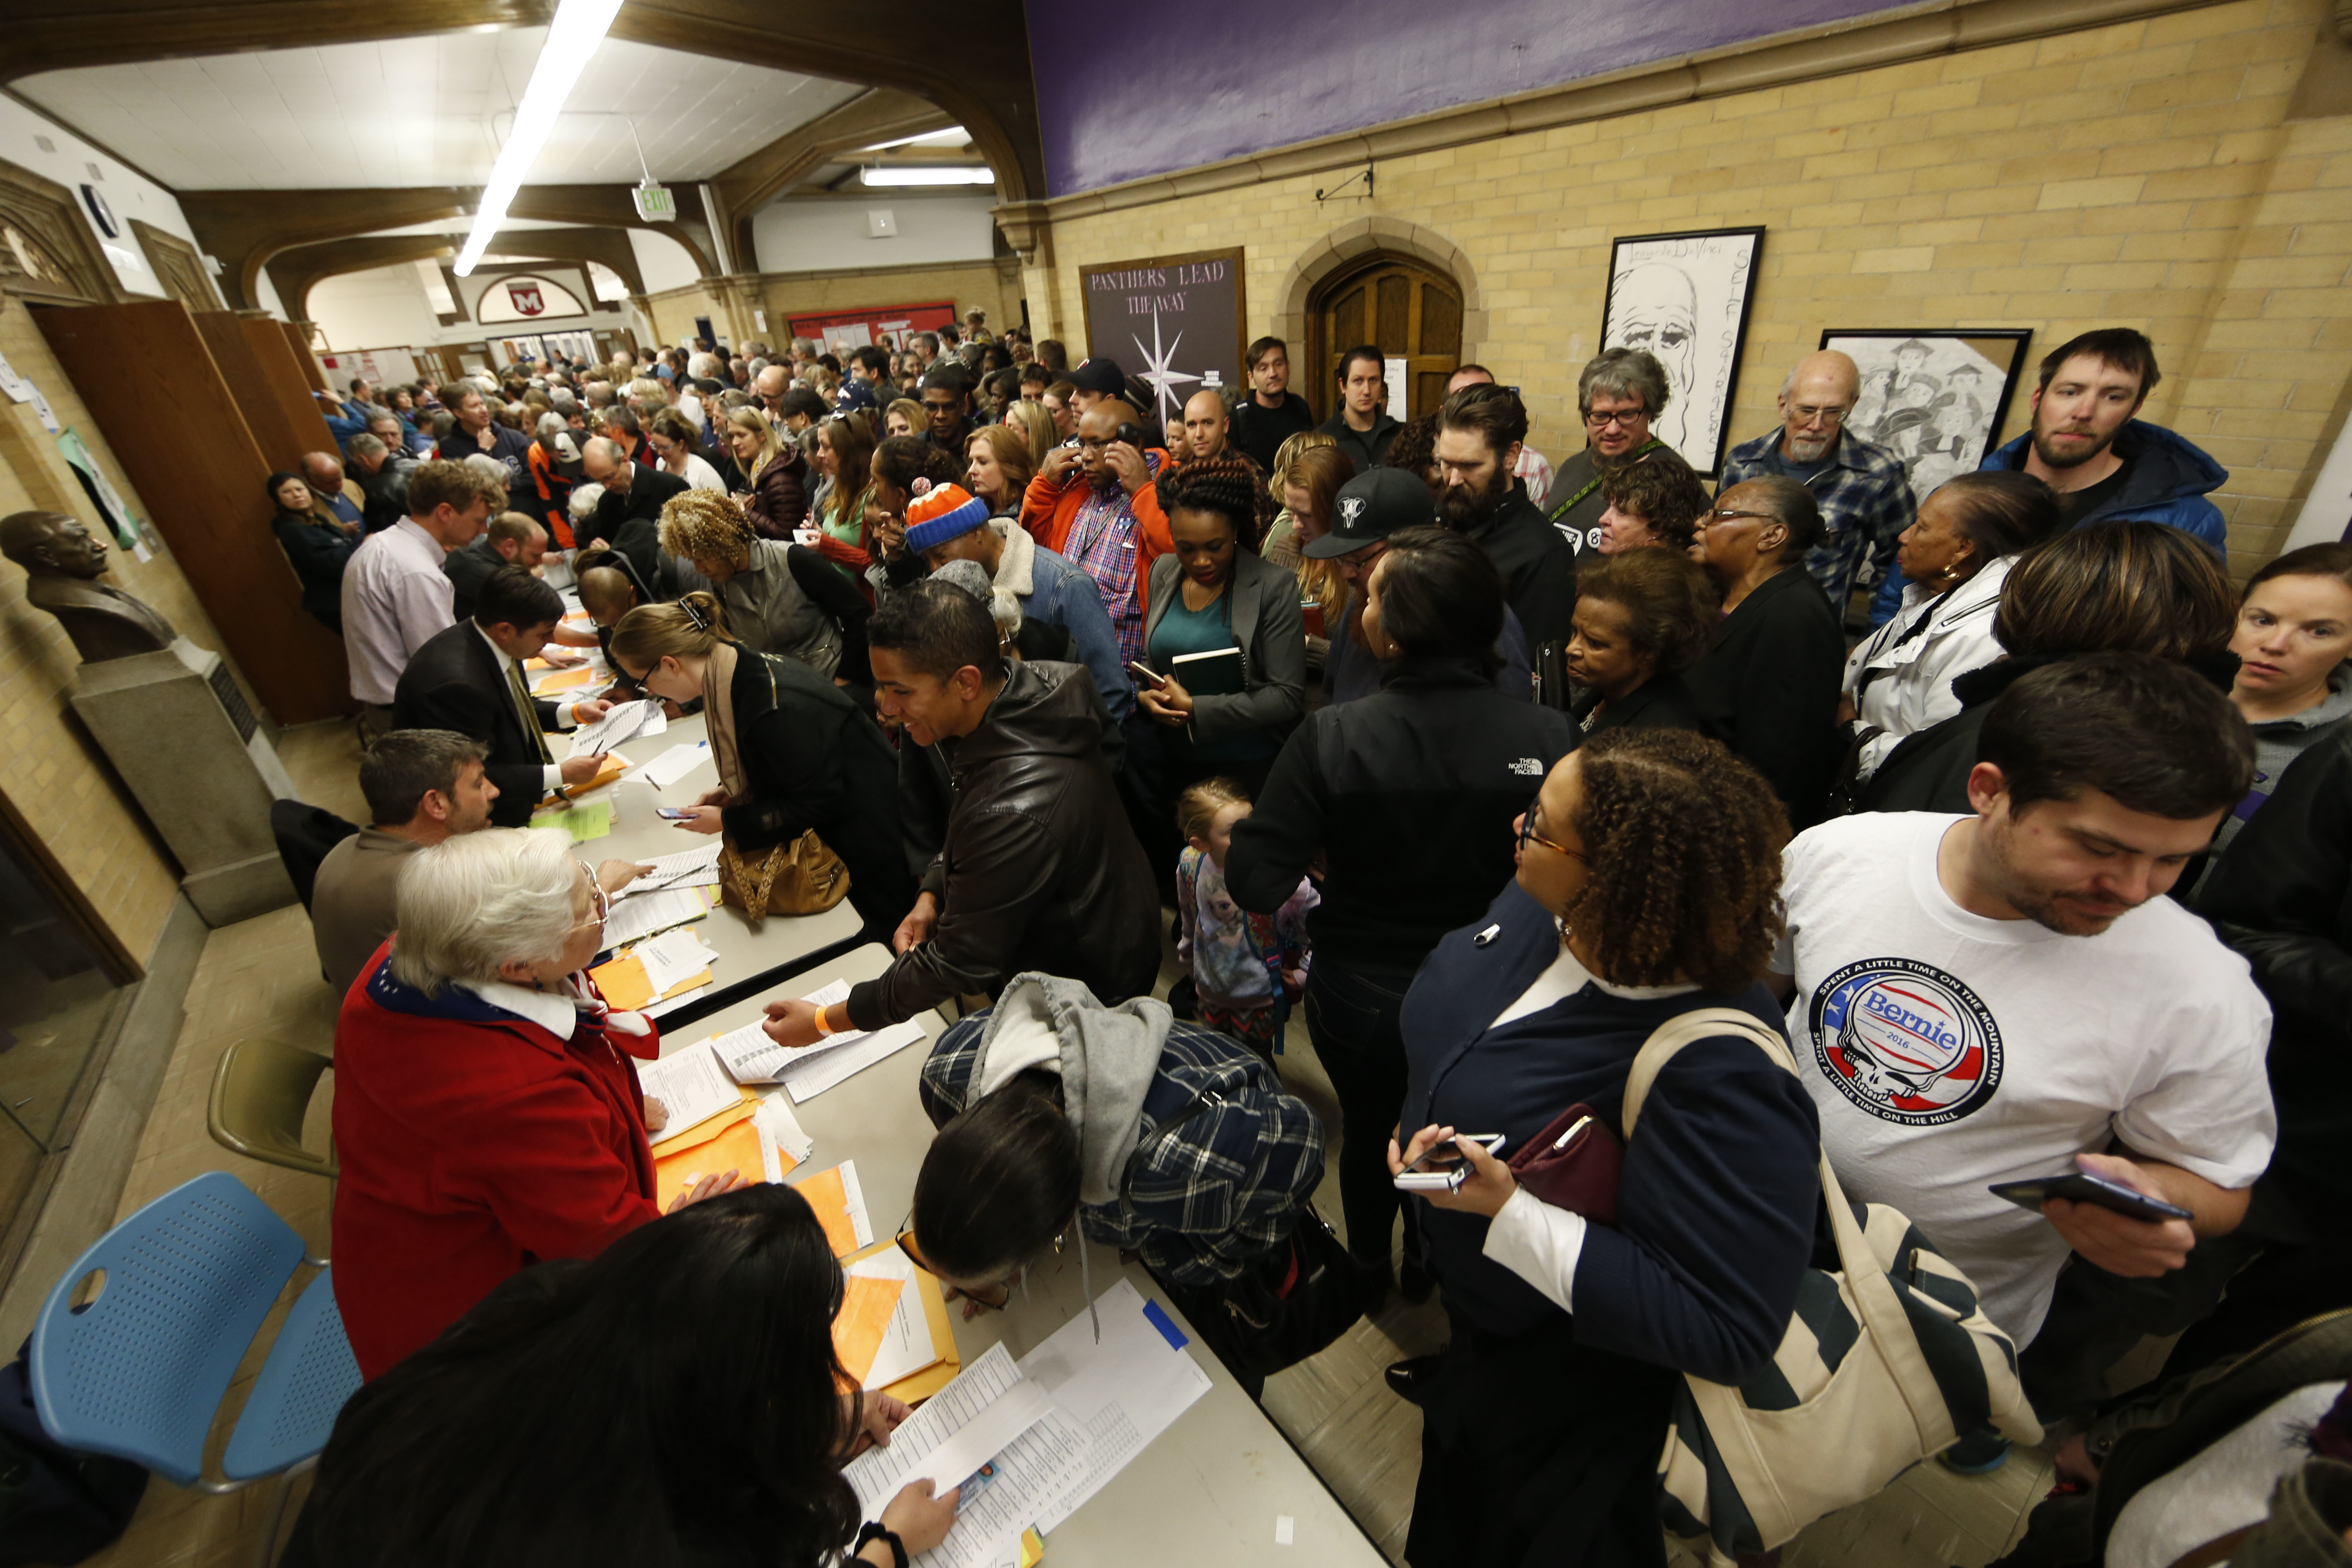 Voters arrive at a Democratic caucus Tuesday, March 1, 2016, in Denver.